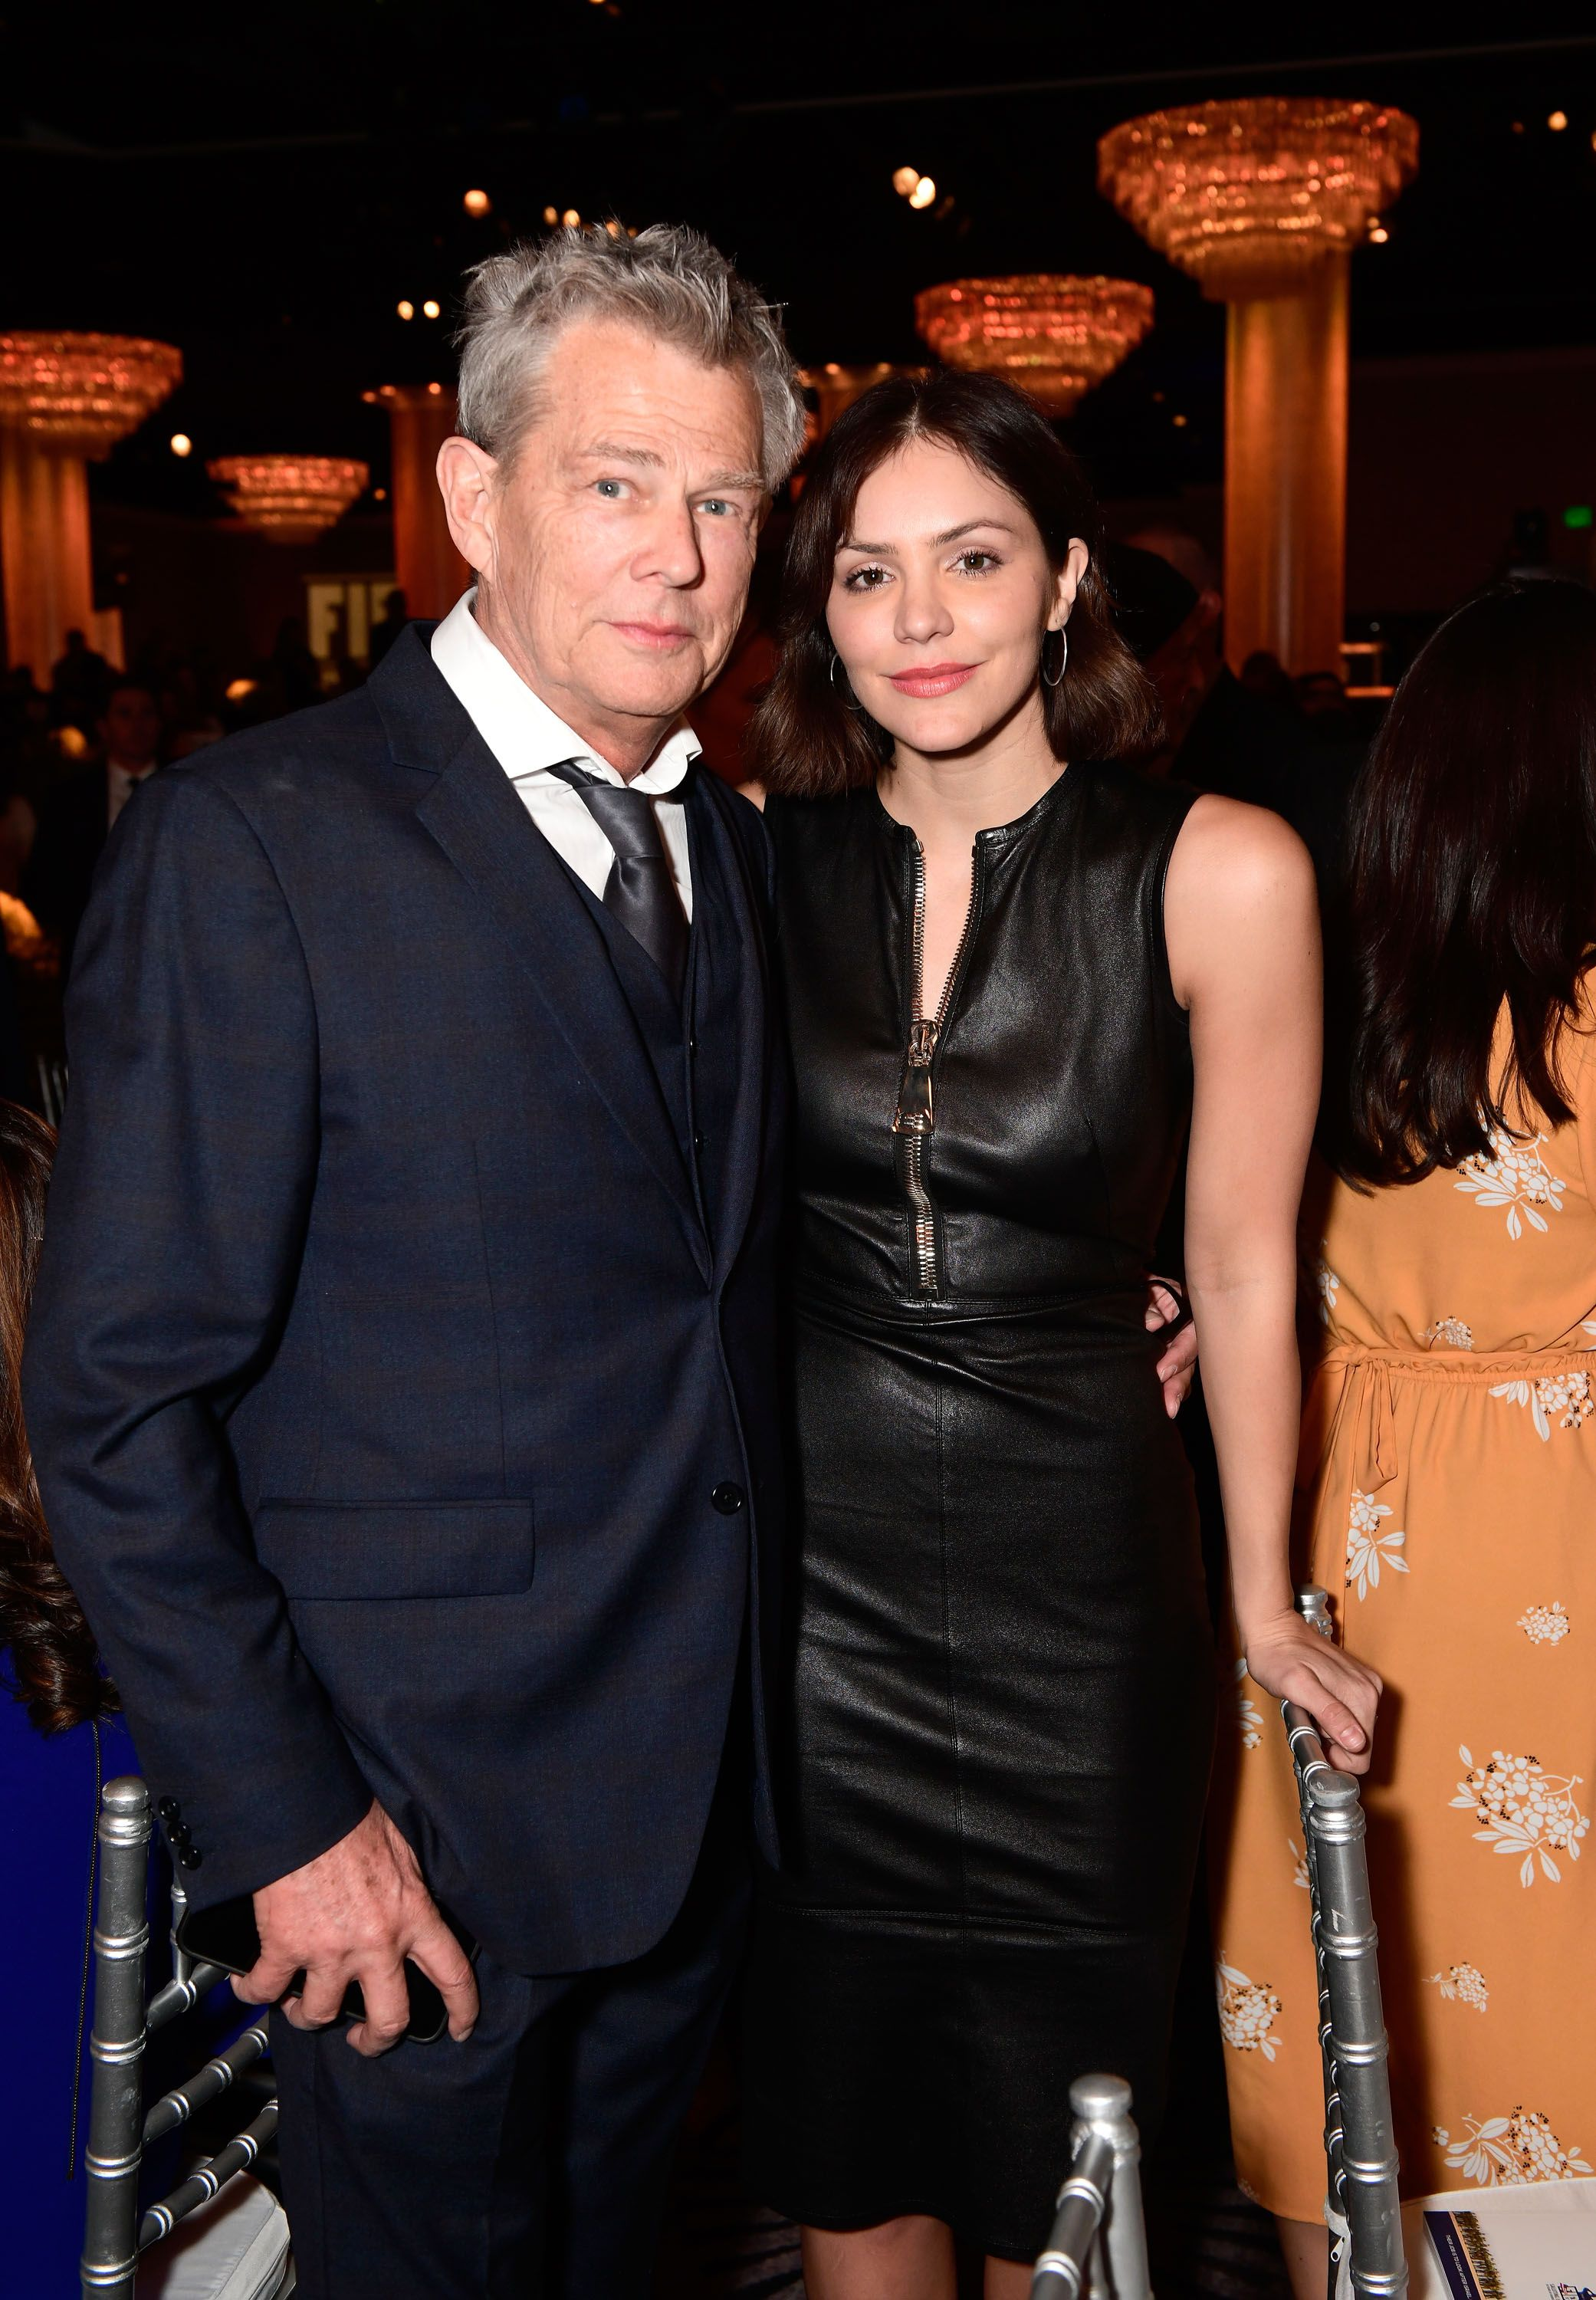 David Foster and Katharine McPhee atFriends of The Israel Defense Forces (FIDF) Western Region Gala on November 1, 2018, in Beverly Hills, California | Photo:Shahar Azran/Getty Images